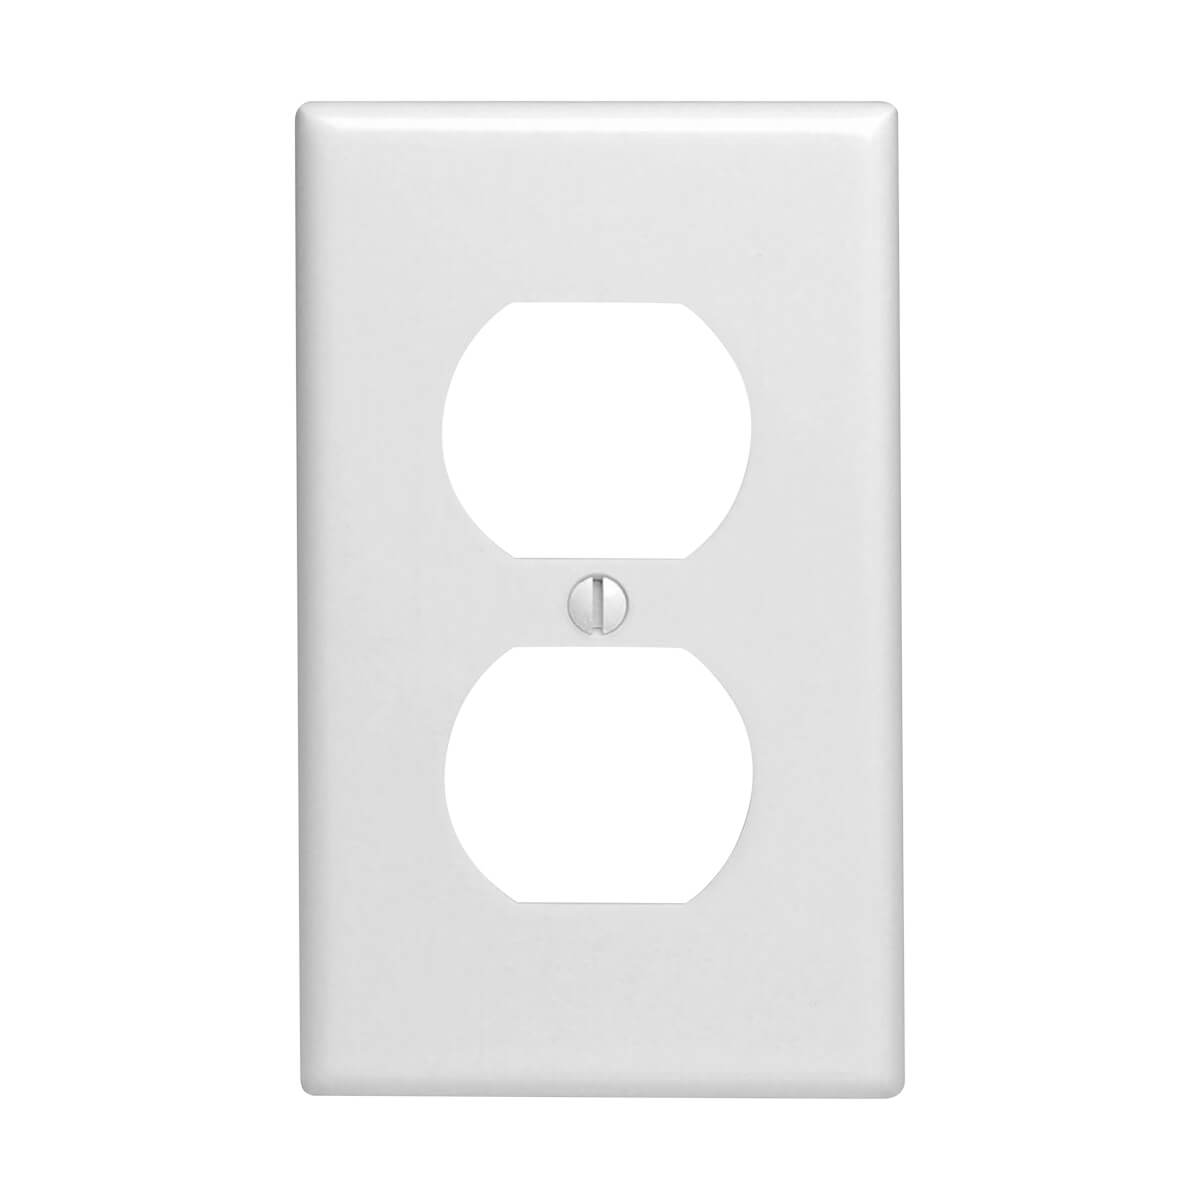 Leviton Smooth White Duplex Receptacle Wall Plate - Standard